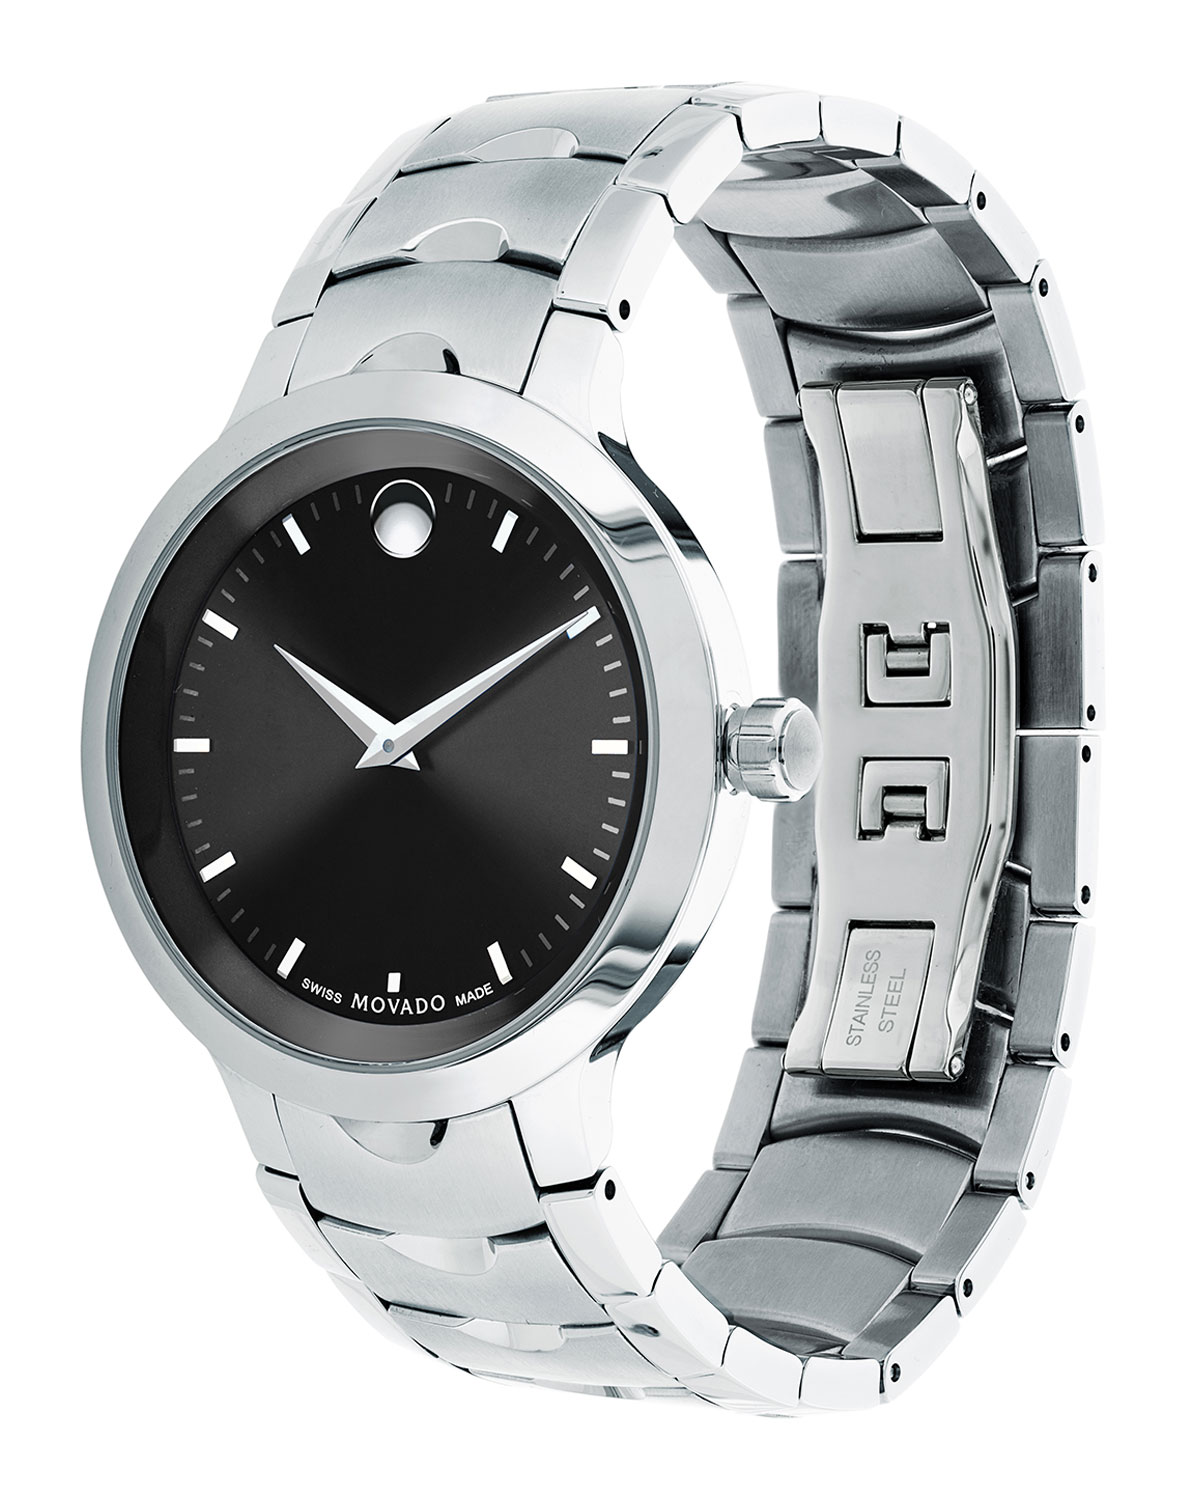 watch bz watches p marcus prod steel luno sport black stainless movado neiman silver